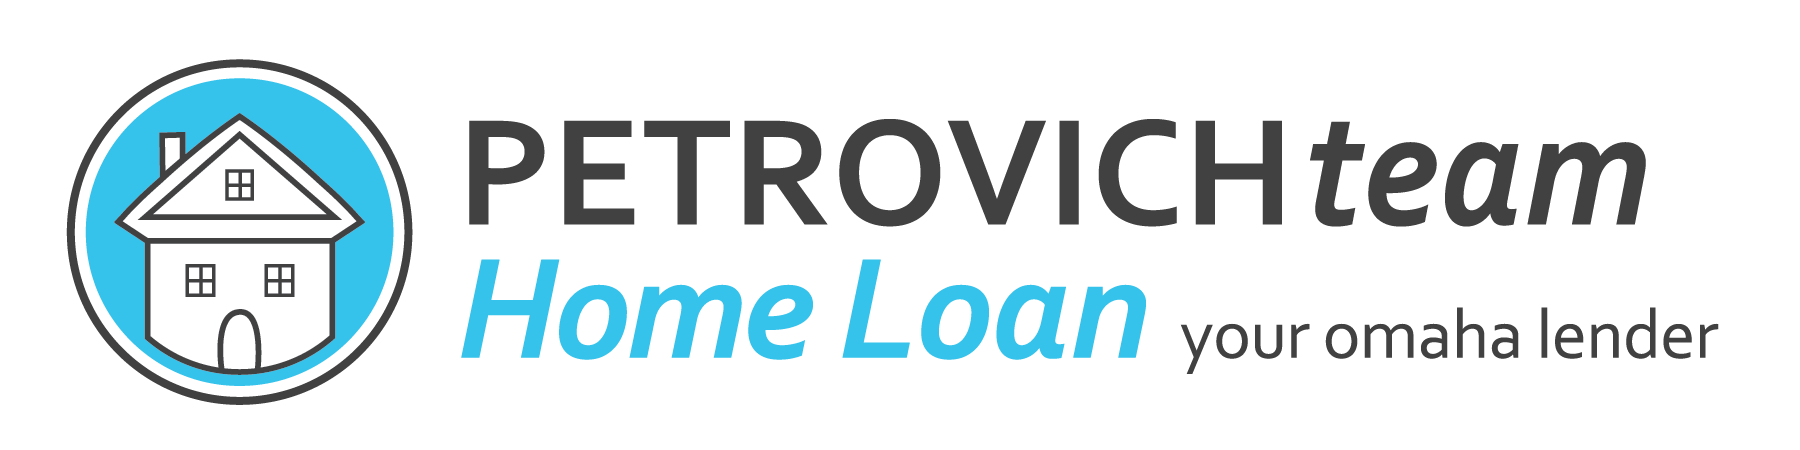 Petrovich Team Home Loan